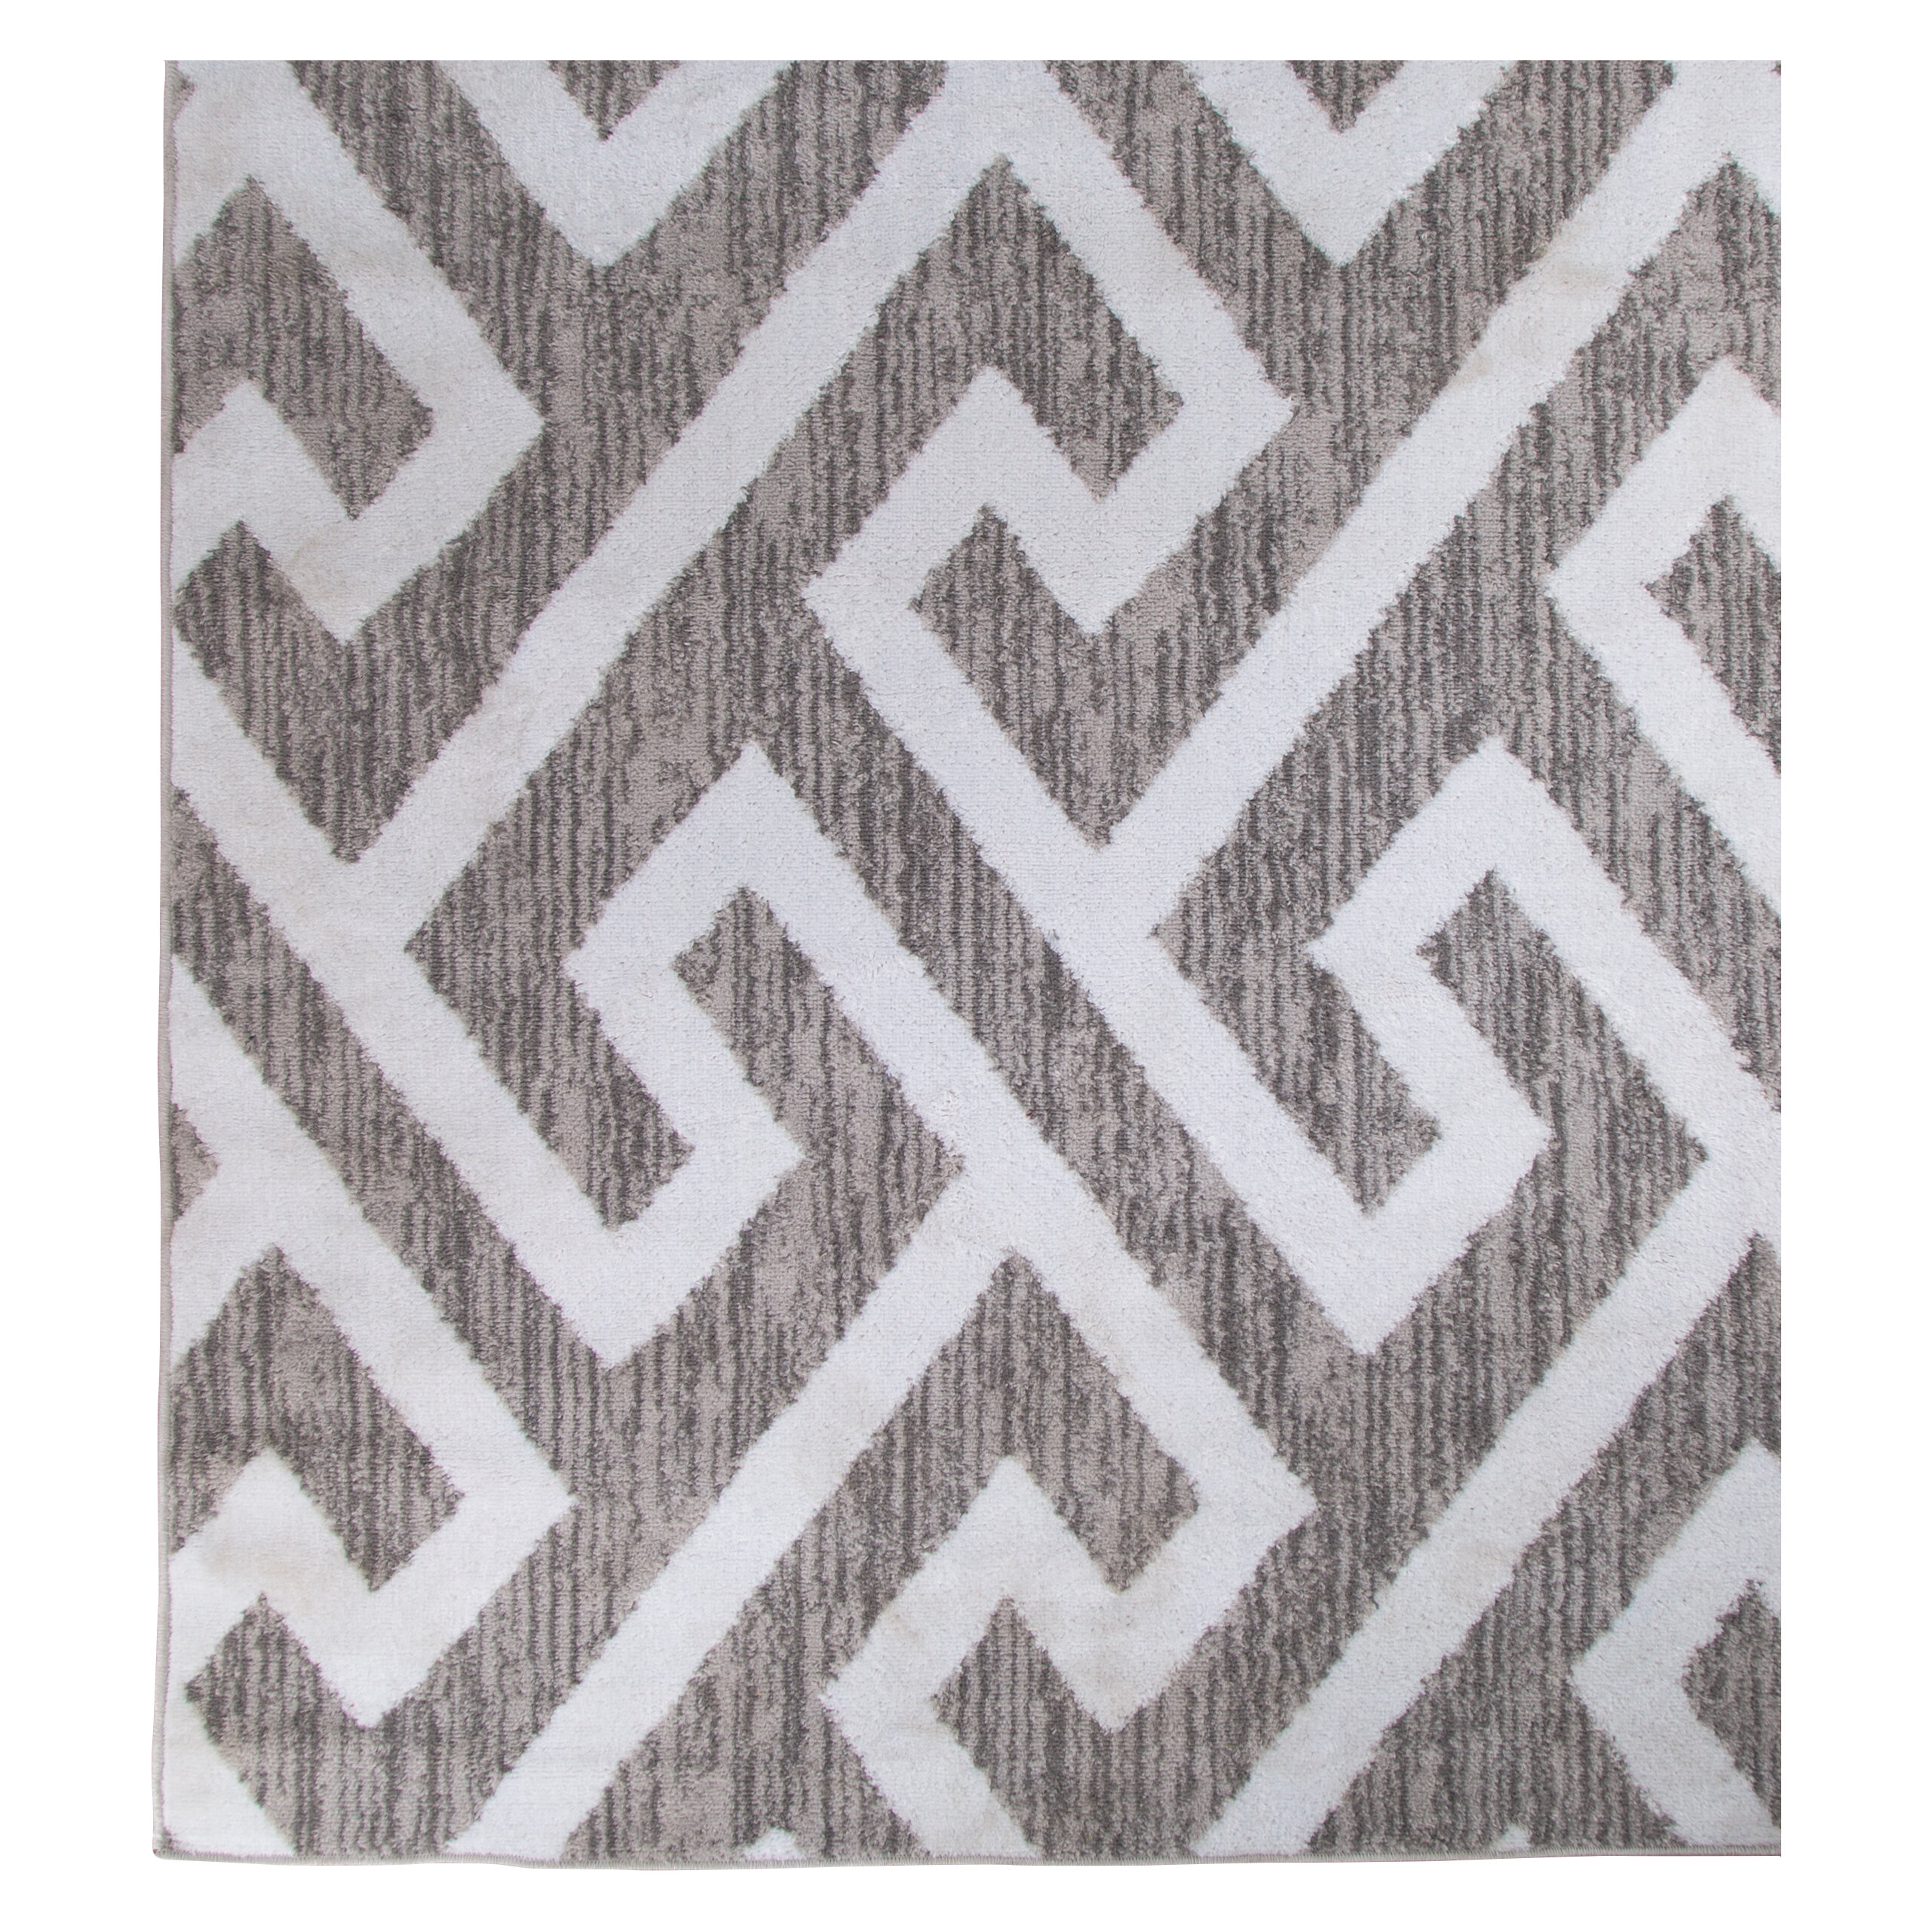 art products high rug ikea textiles cm gray white rugs pile grey sanderum and gb en